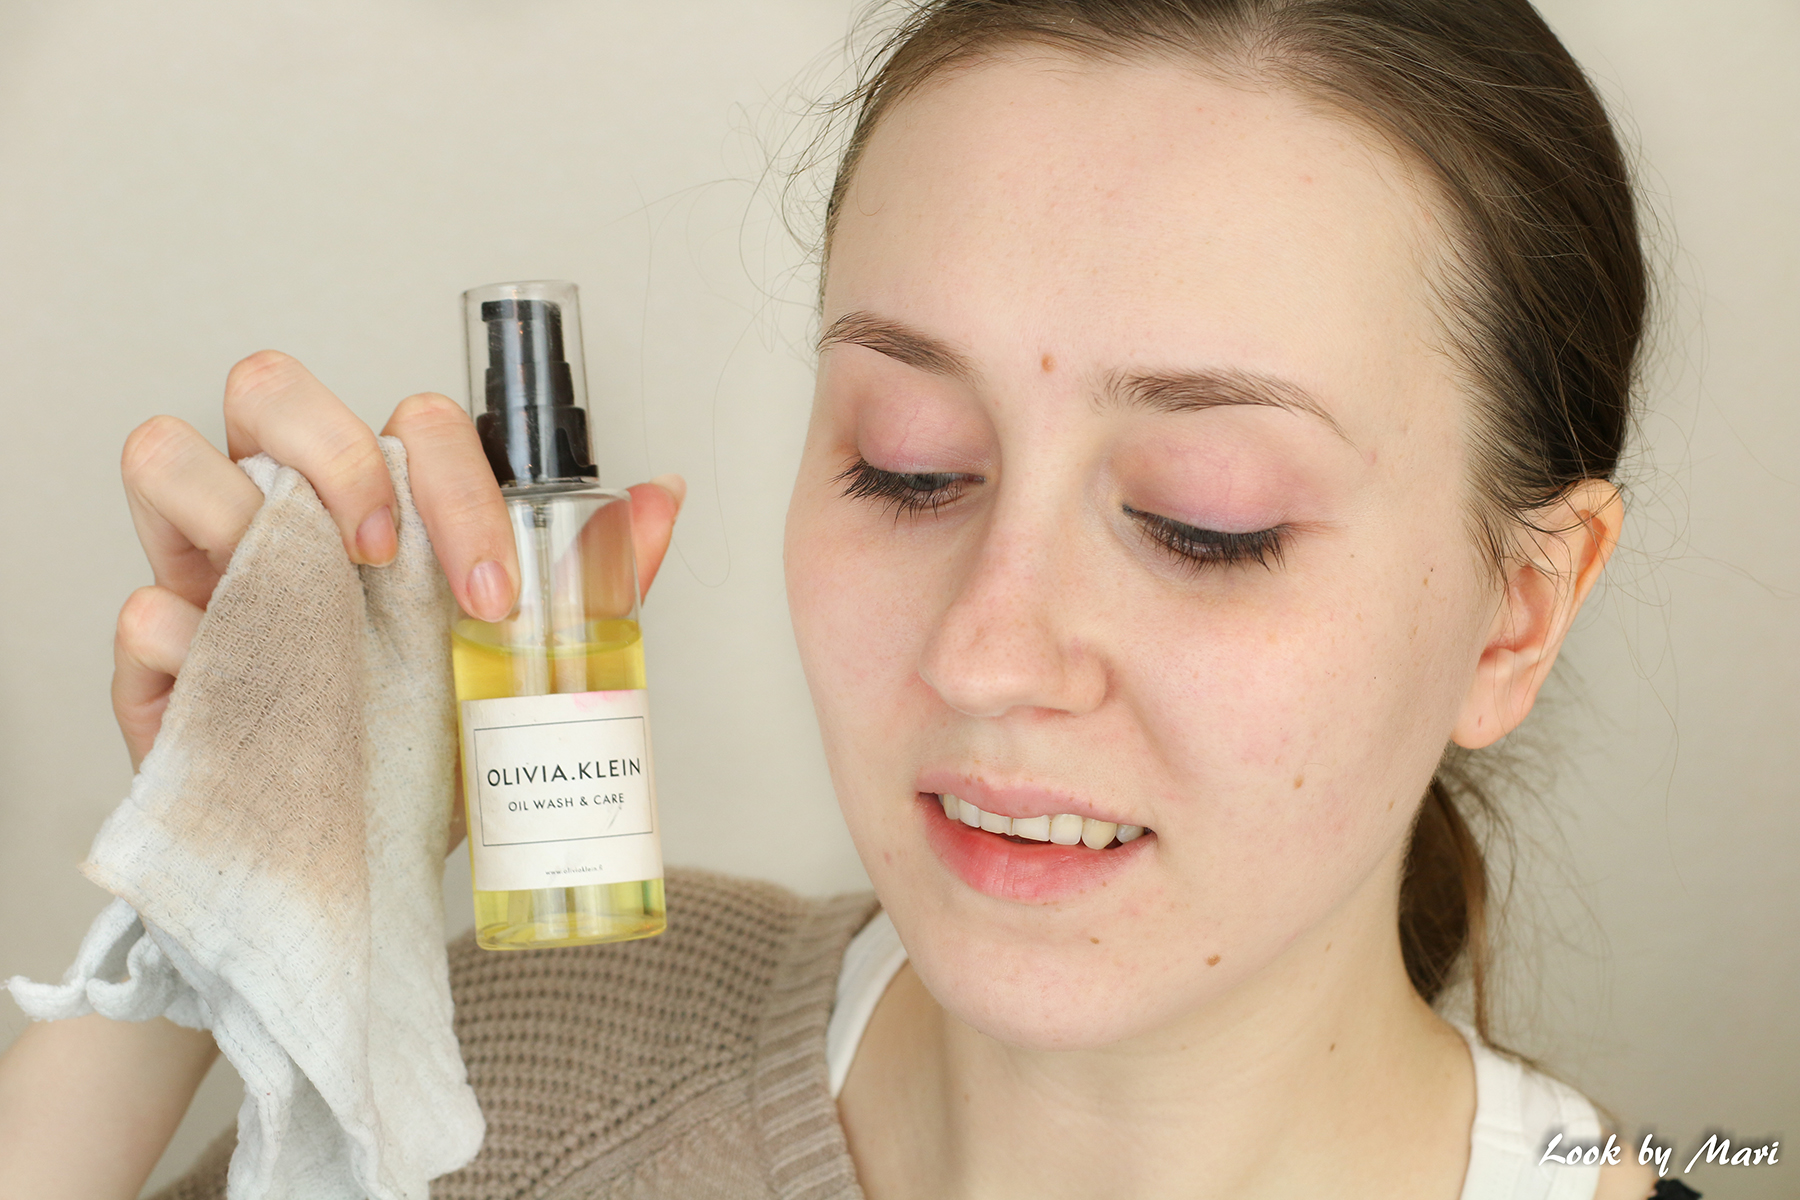 7 olivia klein wash cloth oil wash& care makeup remover oil review prize